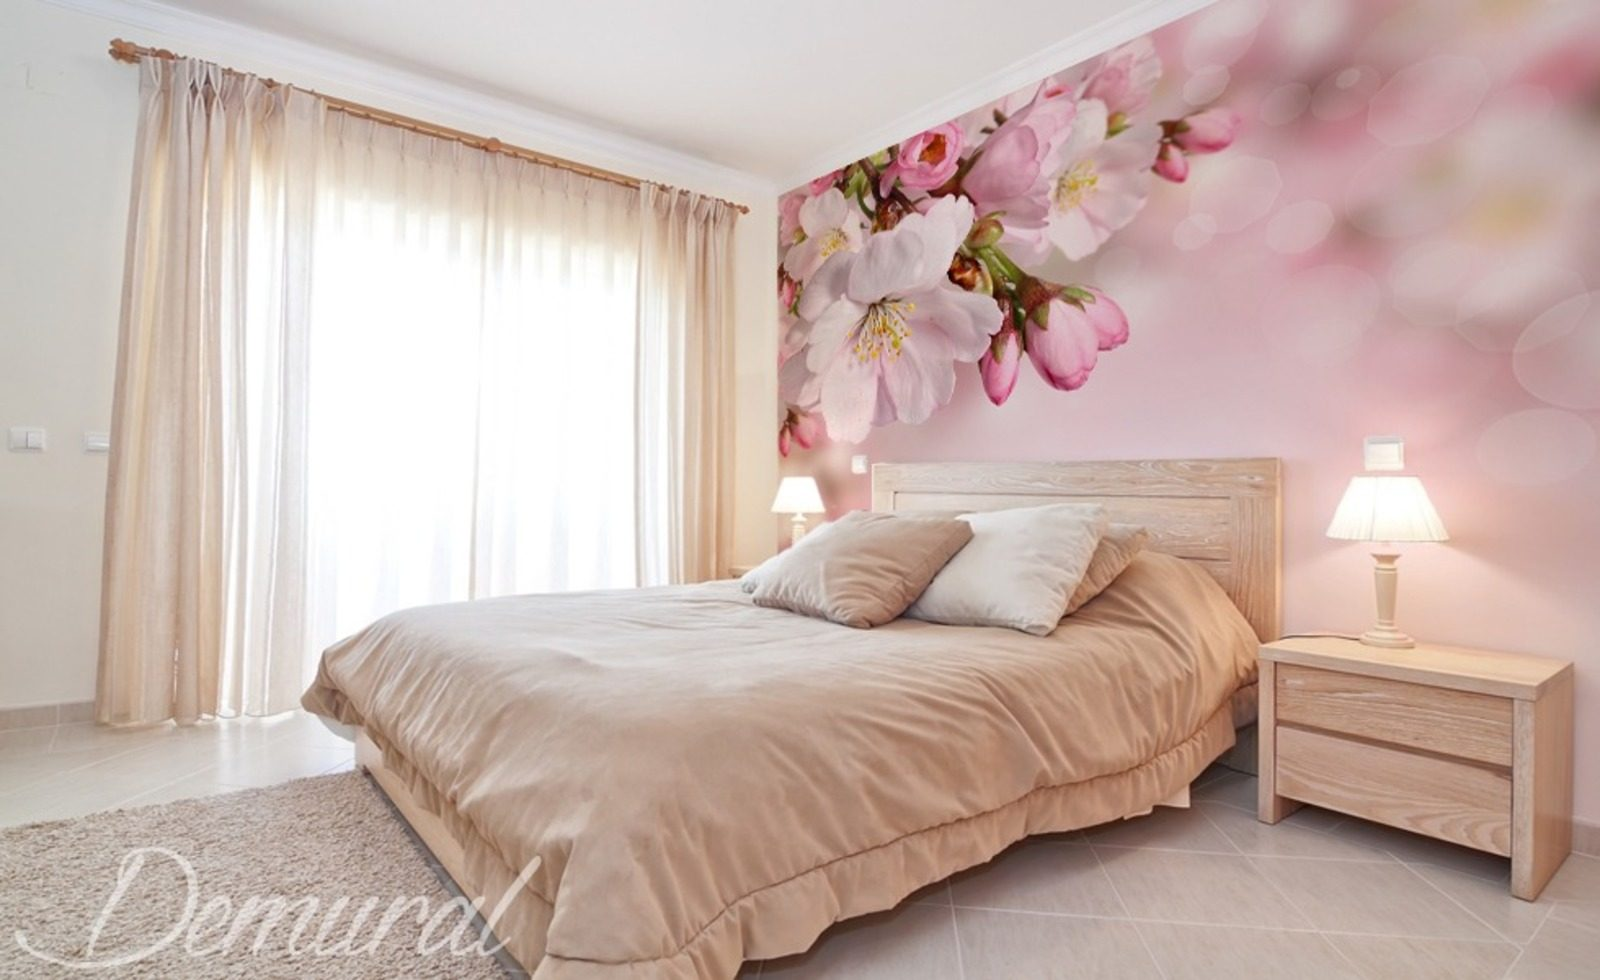 pastell love fototapeten blumen fototapeten demural. Black Bedroom Furniture Sets. Home Design Ideas